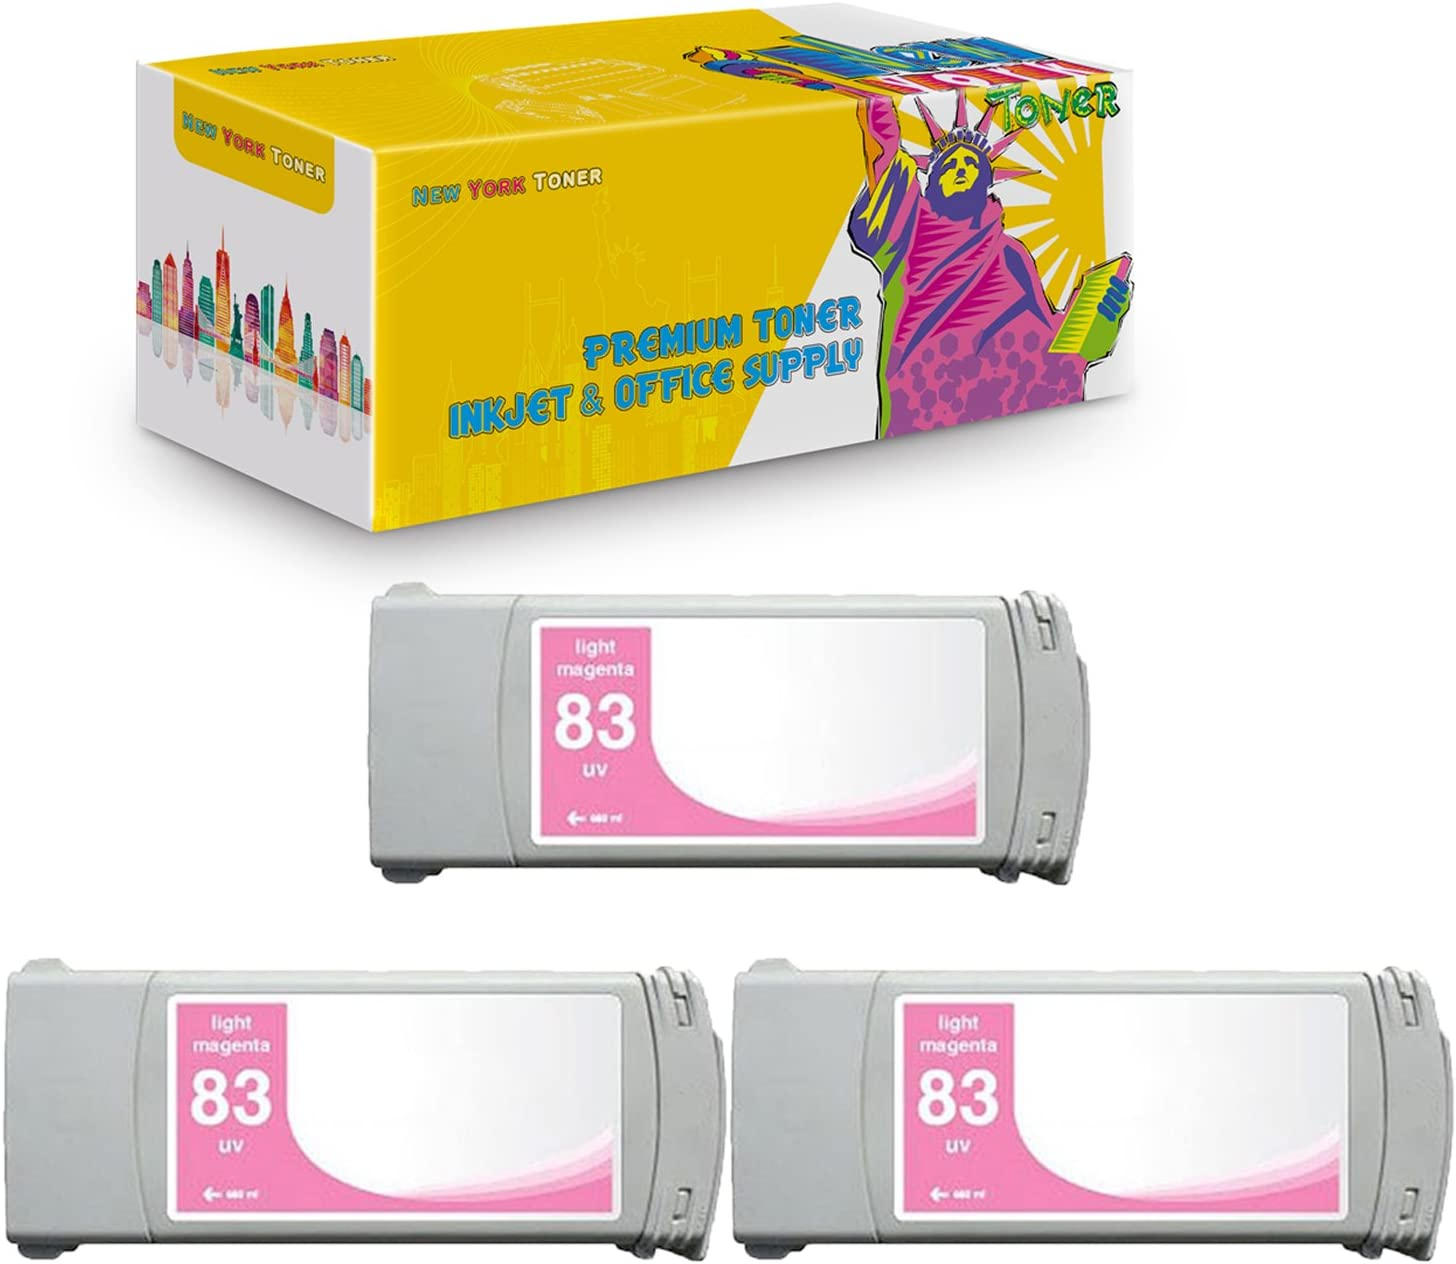 Light Magenta, 3-Pack NYT Compatible High Yield Inkjet Cartridge Replacement for C4945A #83 for HP DesignJet 5000 5500